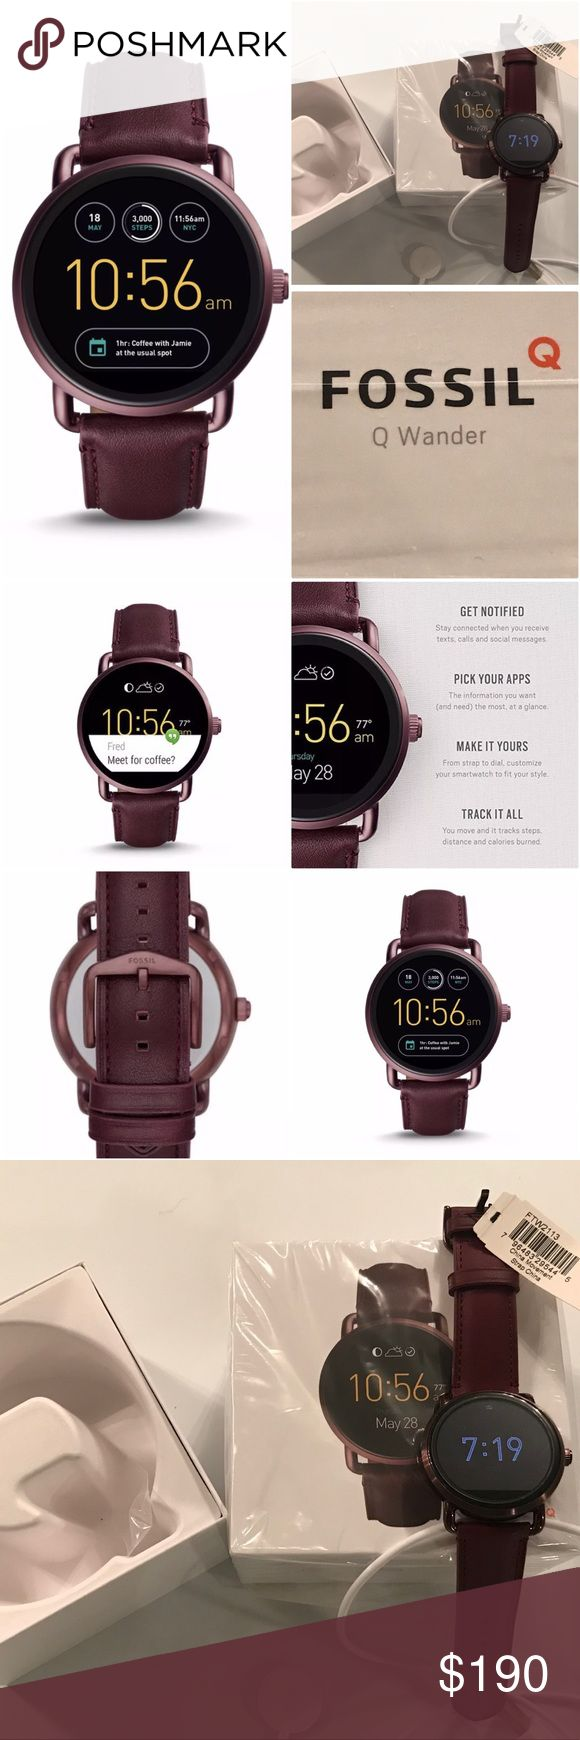 Fossil Q Wander Burgundy Wine Smartwatch - Fab✨✨ Well, I'm embarrassed to say that I had no idea that my IPhone wouldn't work with this watch!! I know what you're thinking....However, I was so in love with this fabulous color that I neglected to get the details on compatibility.  • Fossil Q Wander Gen 2 Smartwatch • Burgundy/Wine  This watch is ✨NEW, although the box has been opened. Many of the features do not work with iphone. Some features do work: Messages, emails, social media…